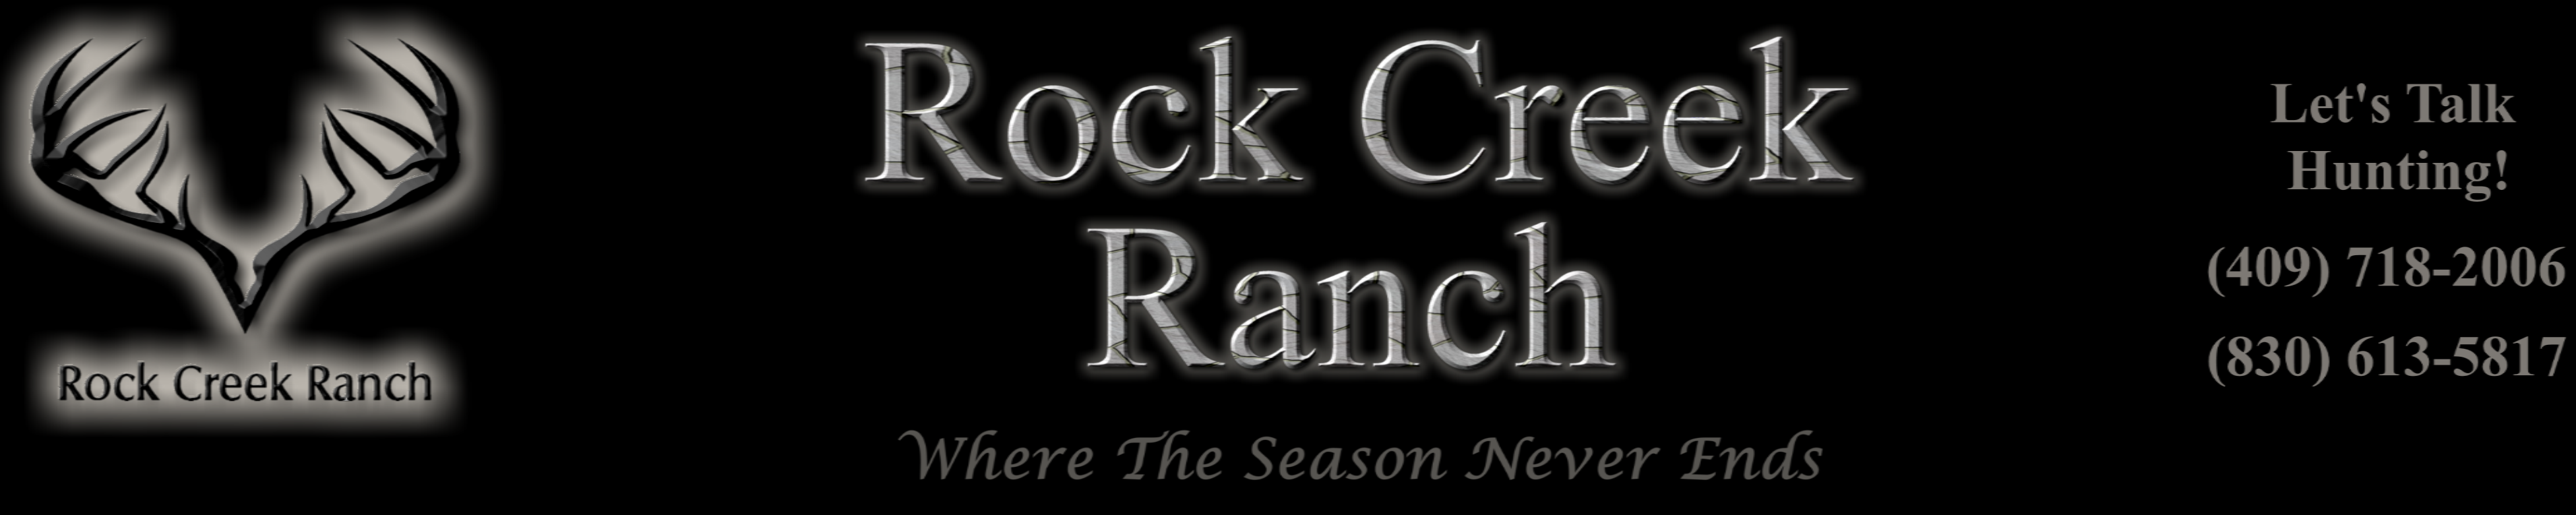 Rock Creek Ranch